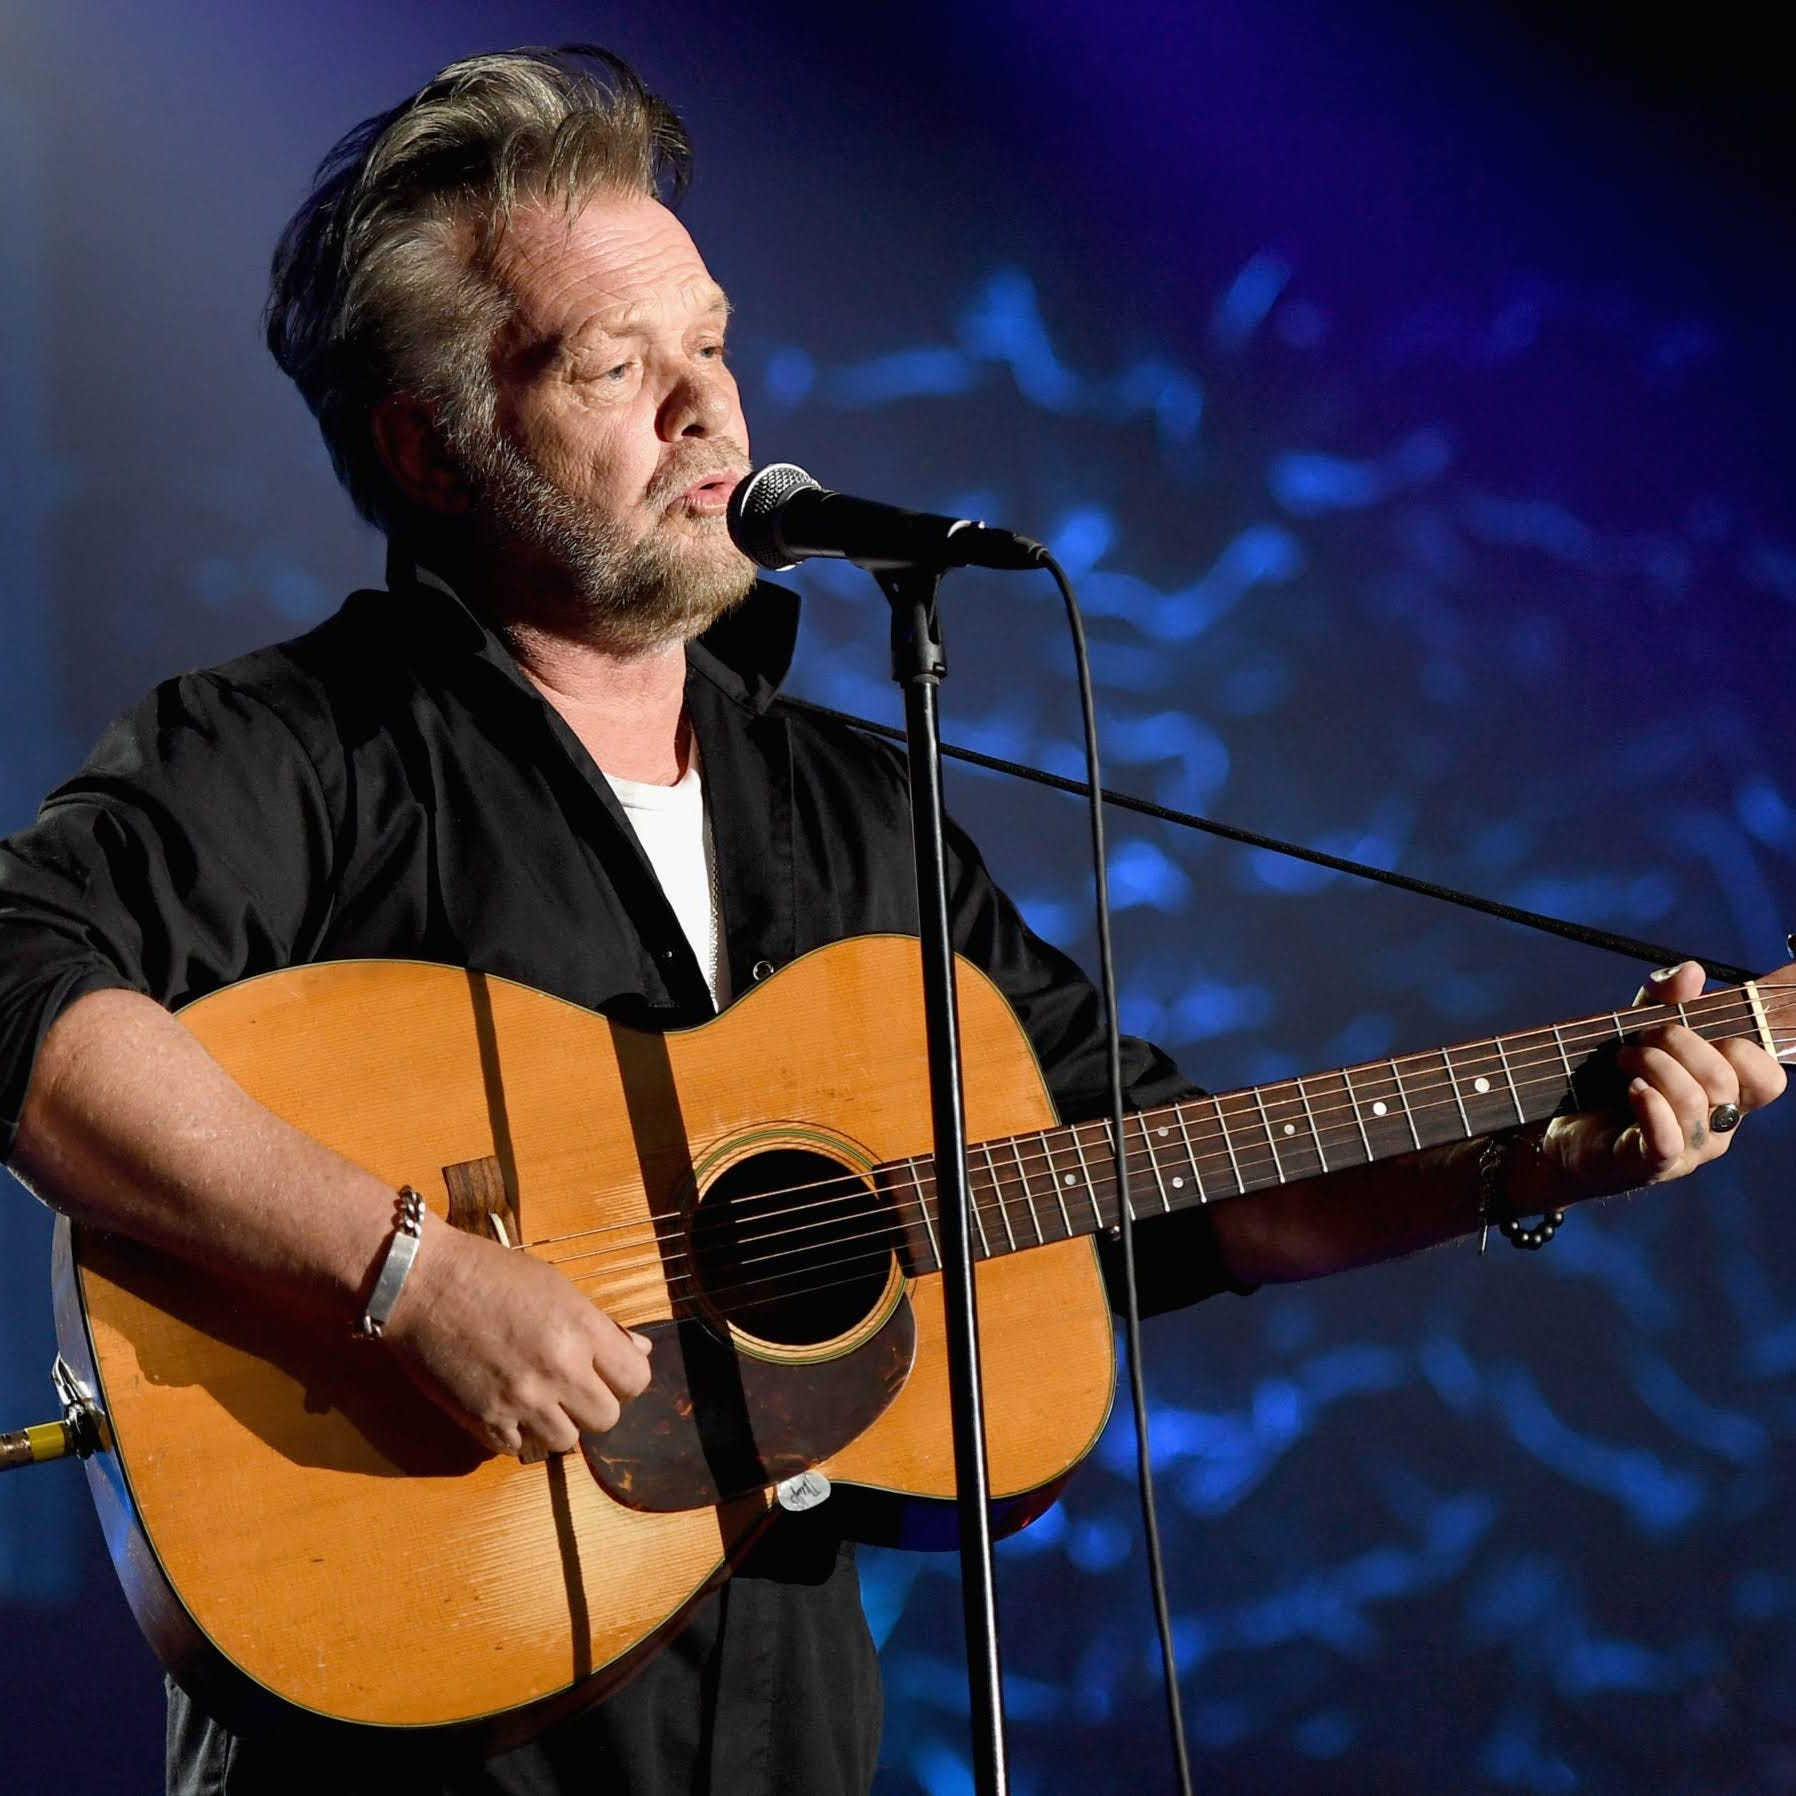 John Mellencamp gets comfortable, candid at Buddhist center anniversary event